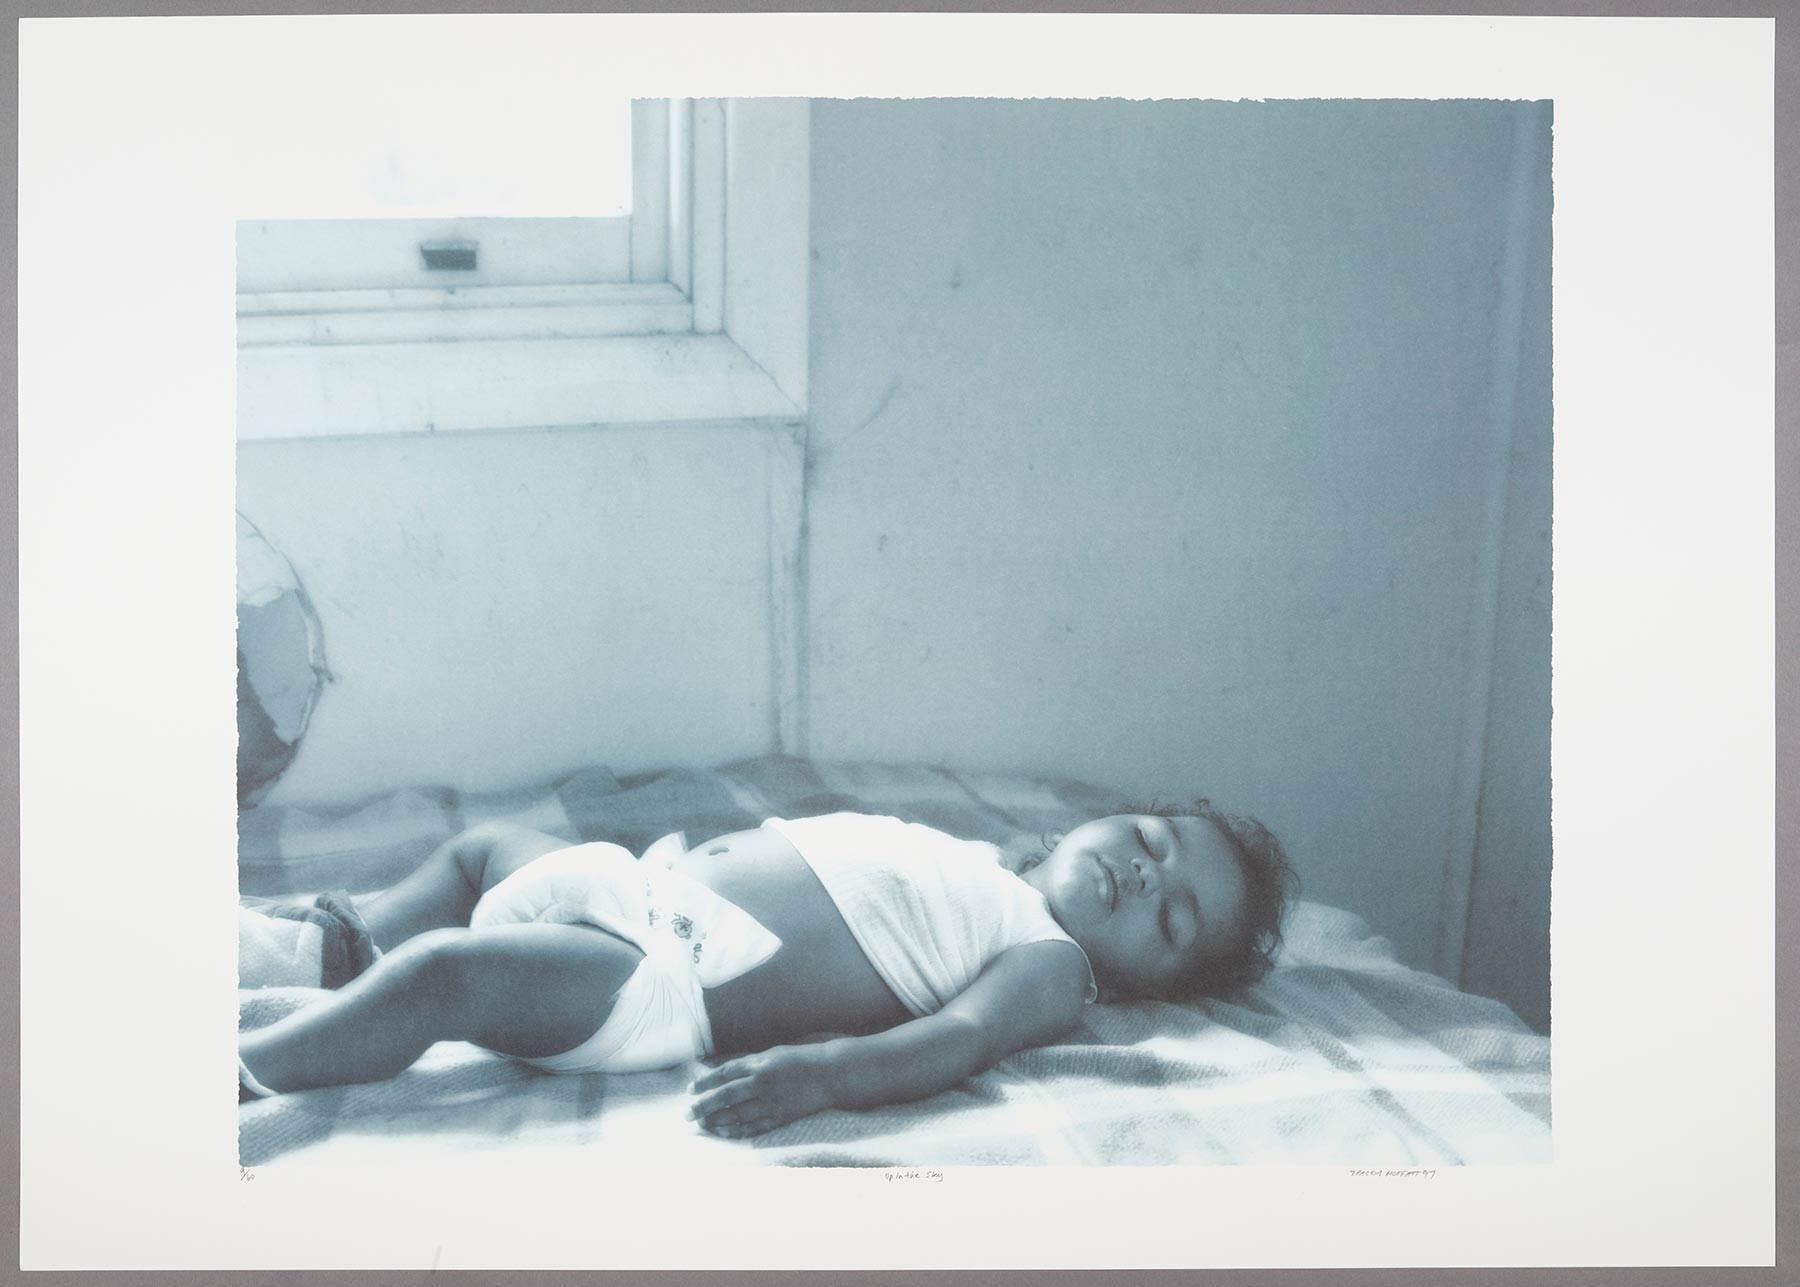 Image of baby on bed